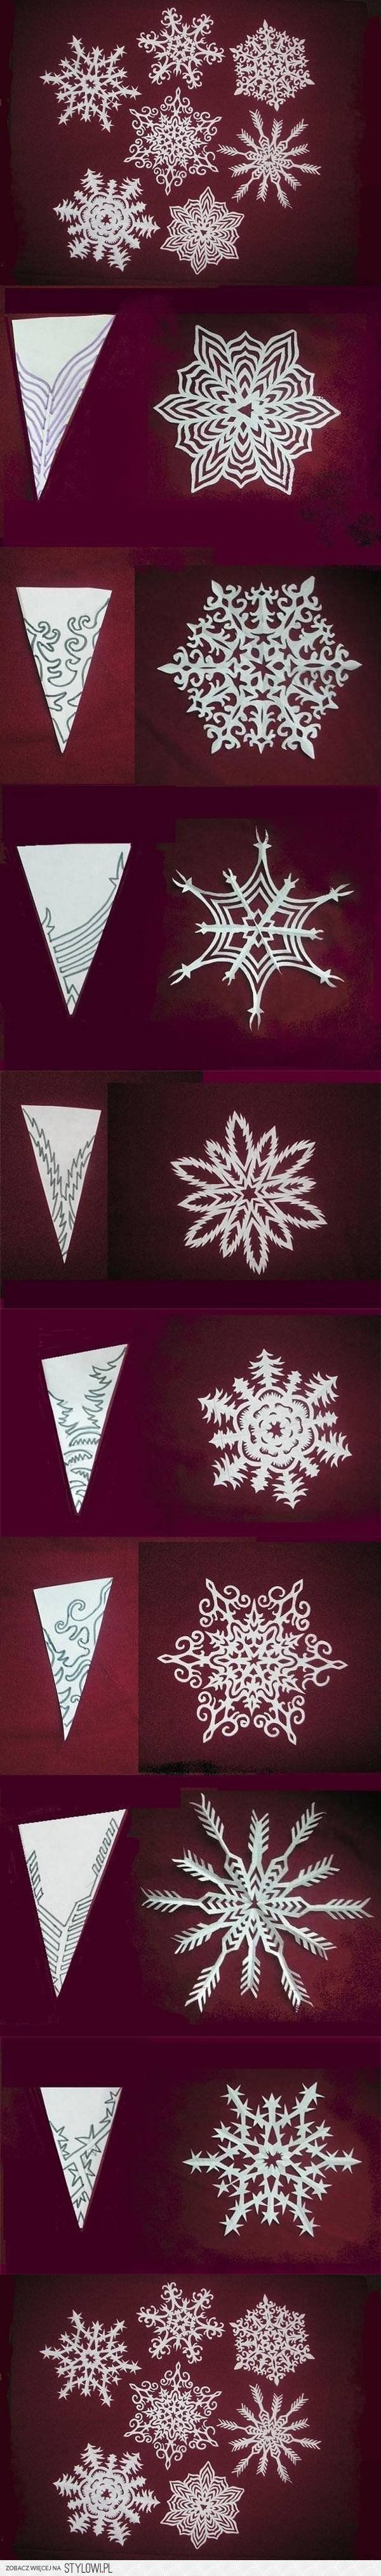 DIY Snowflakes Paper Pattern Tutorial DIY Projects